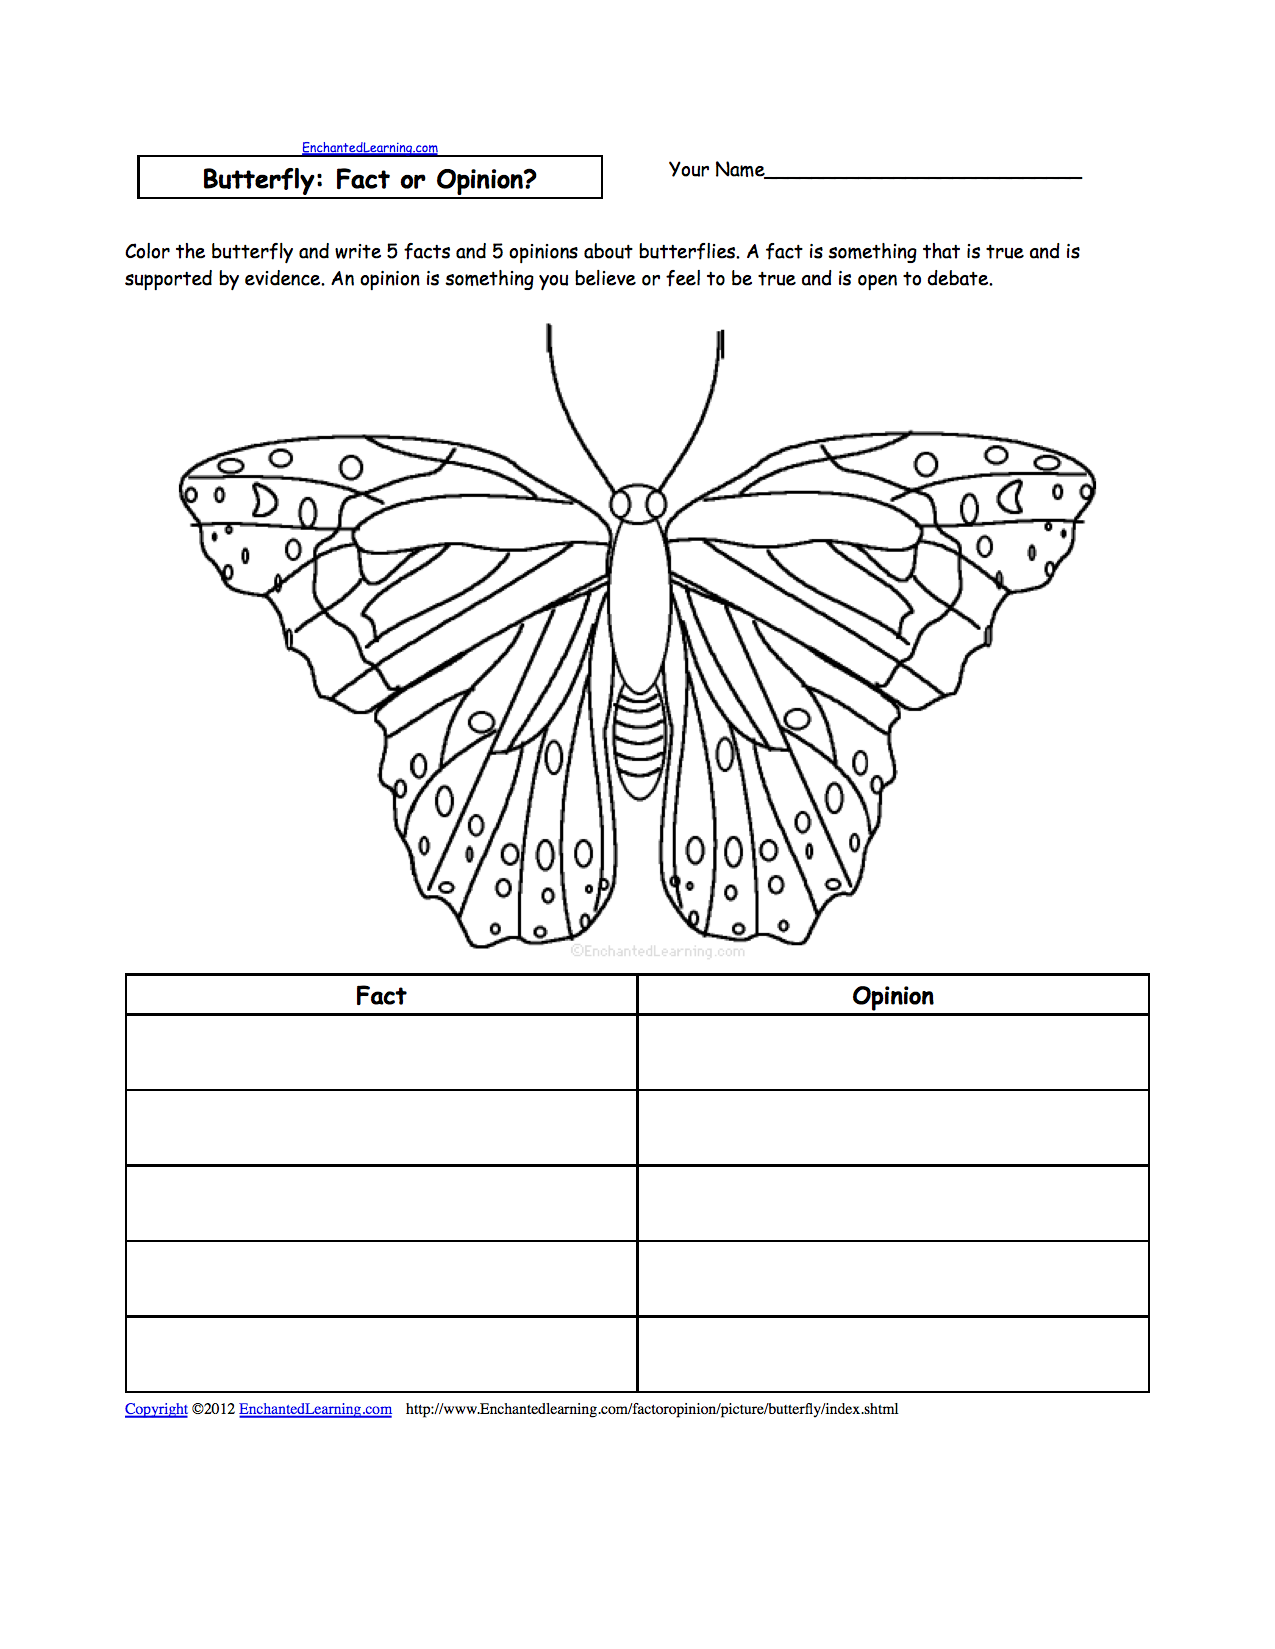 Coloring pages of spring things - Coloring Pages Of Spring Things 58